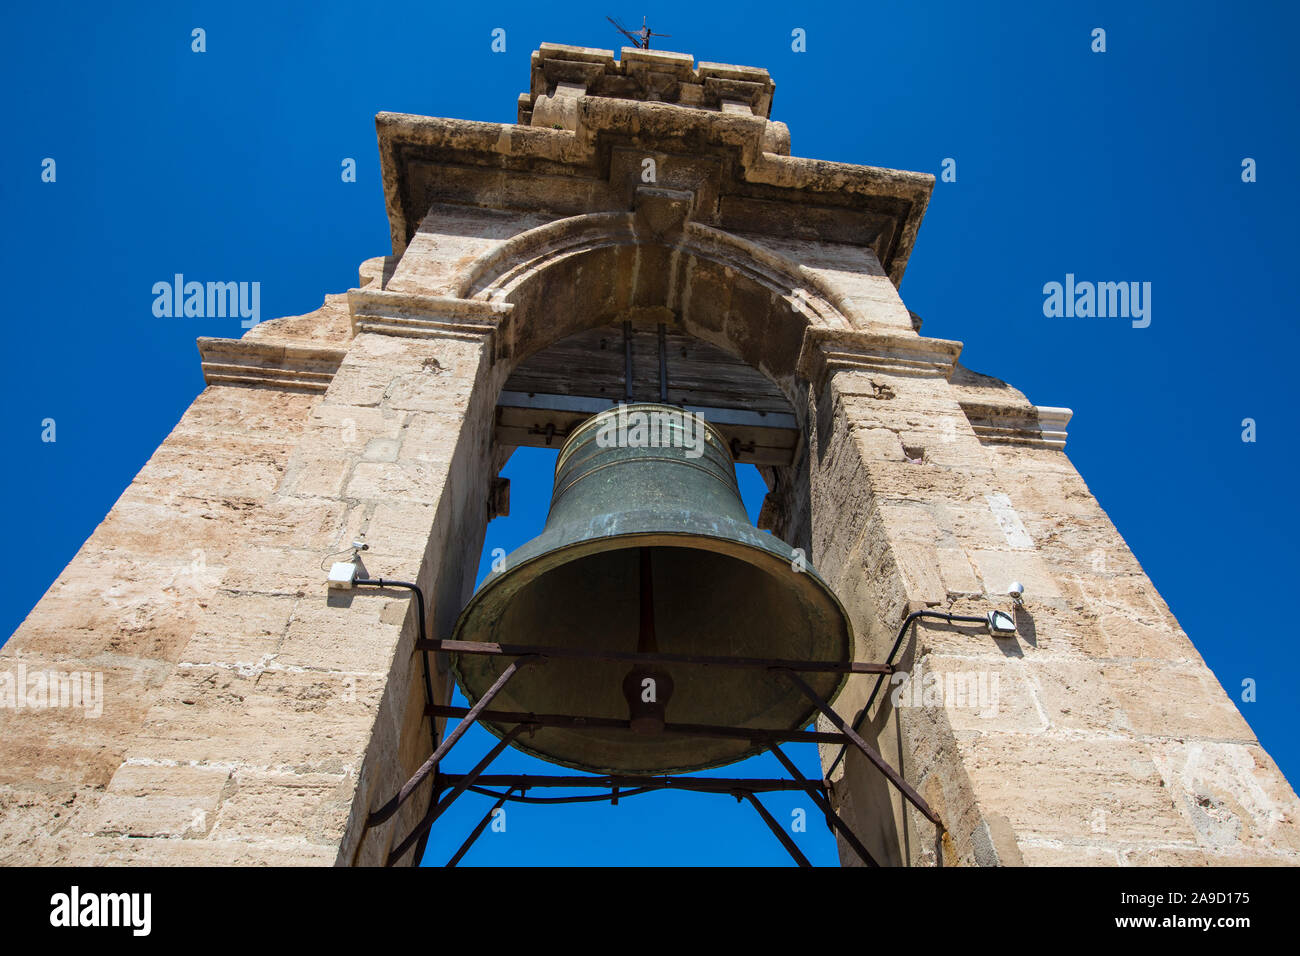 The bell of the historic Torre del Micalet, or El Miguelete - the bell tower of Valencia Cathedral in Spain. Stock Photo